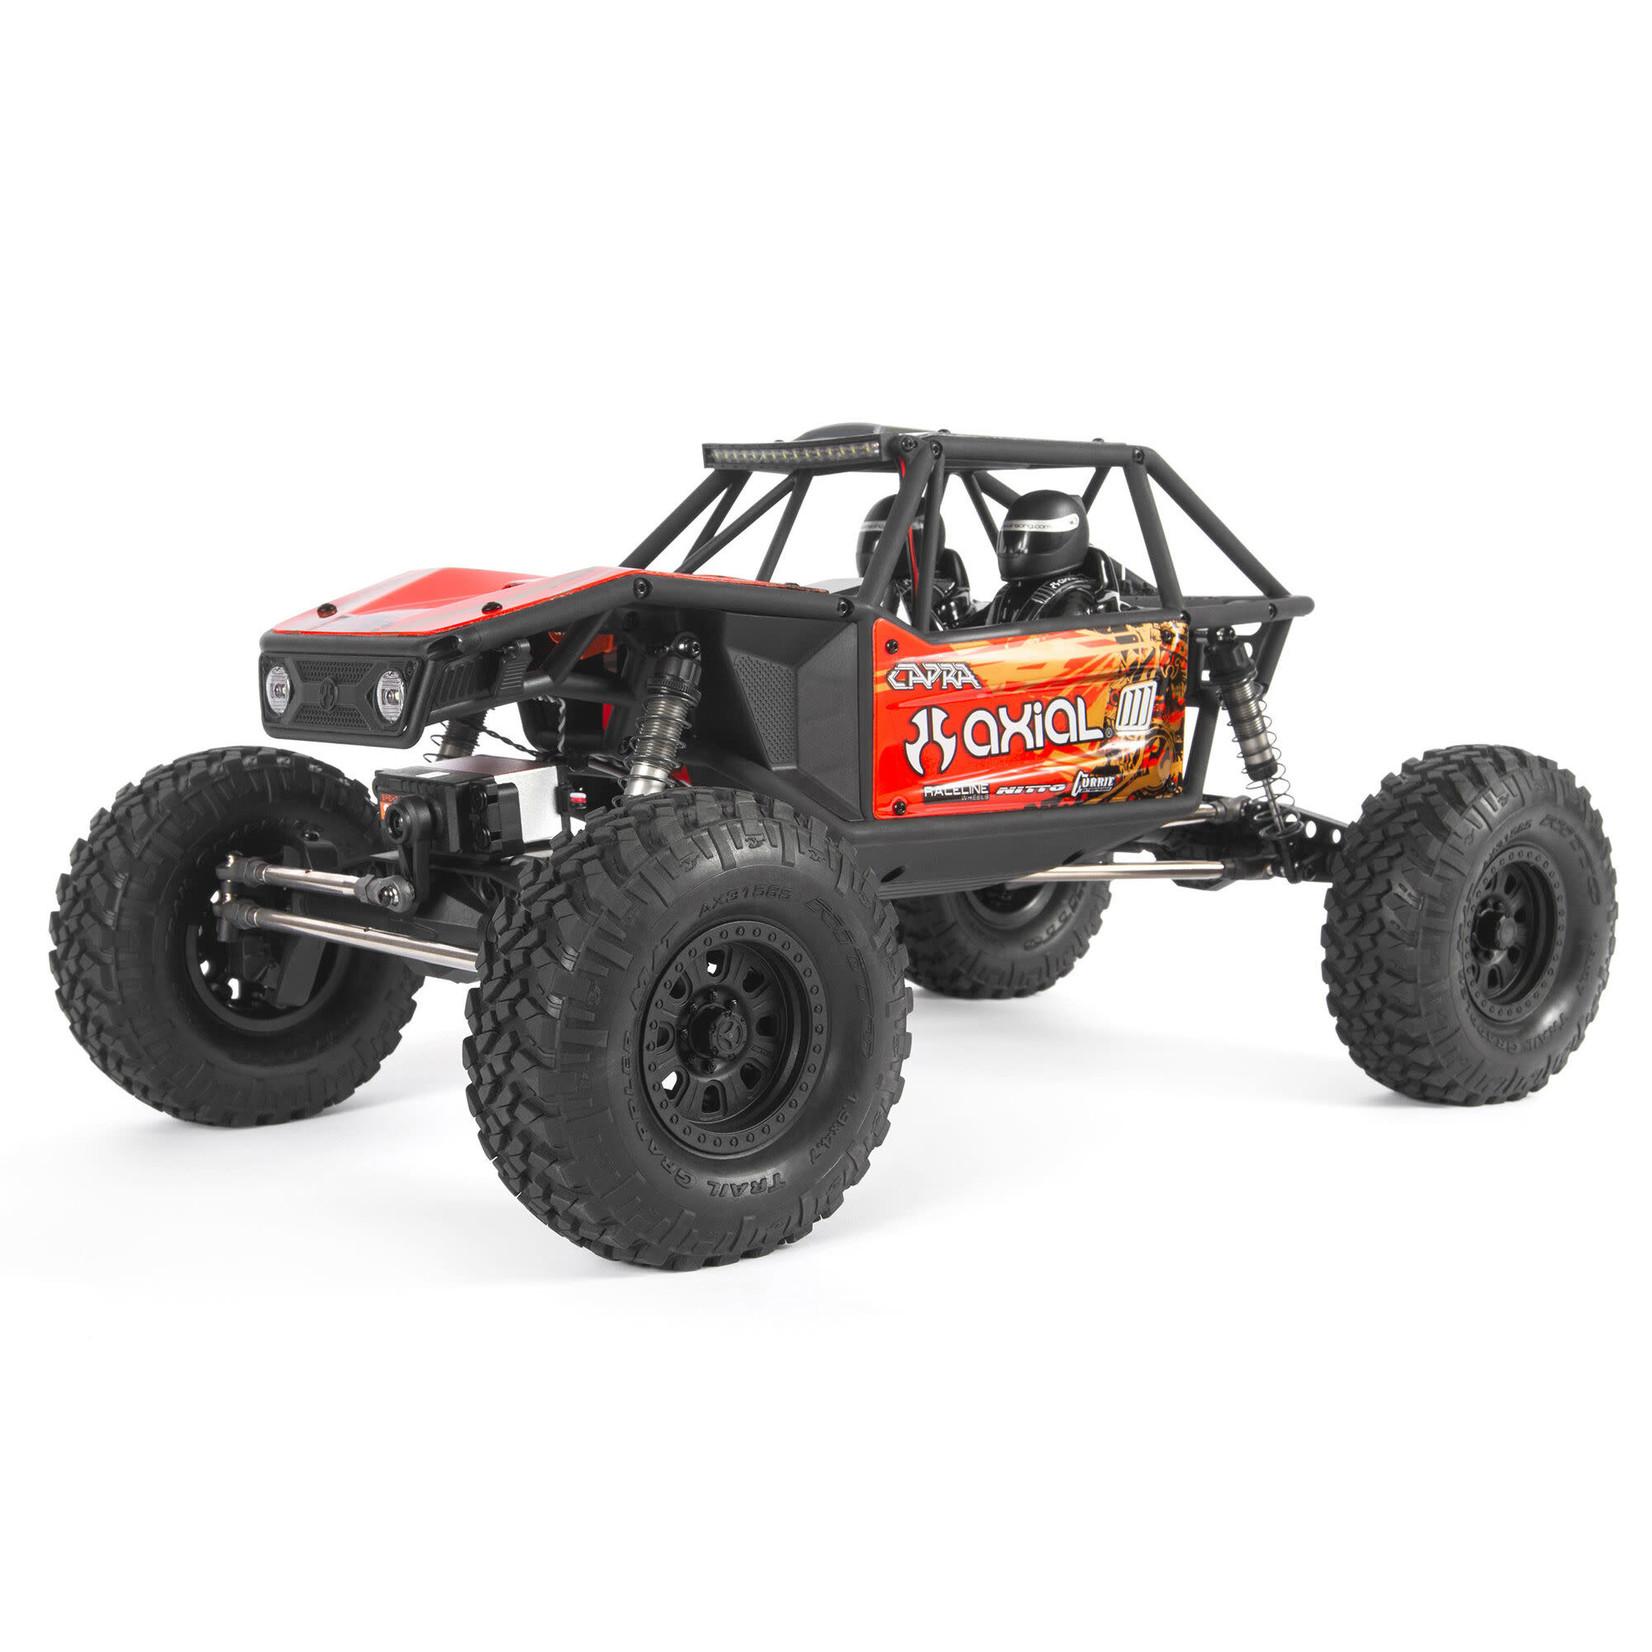 Axial AXI03000 Axial Capra 1.9 Unlimited Trail Buggy